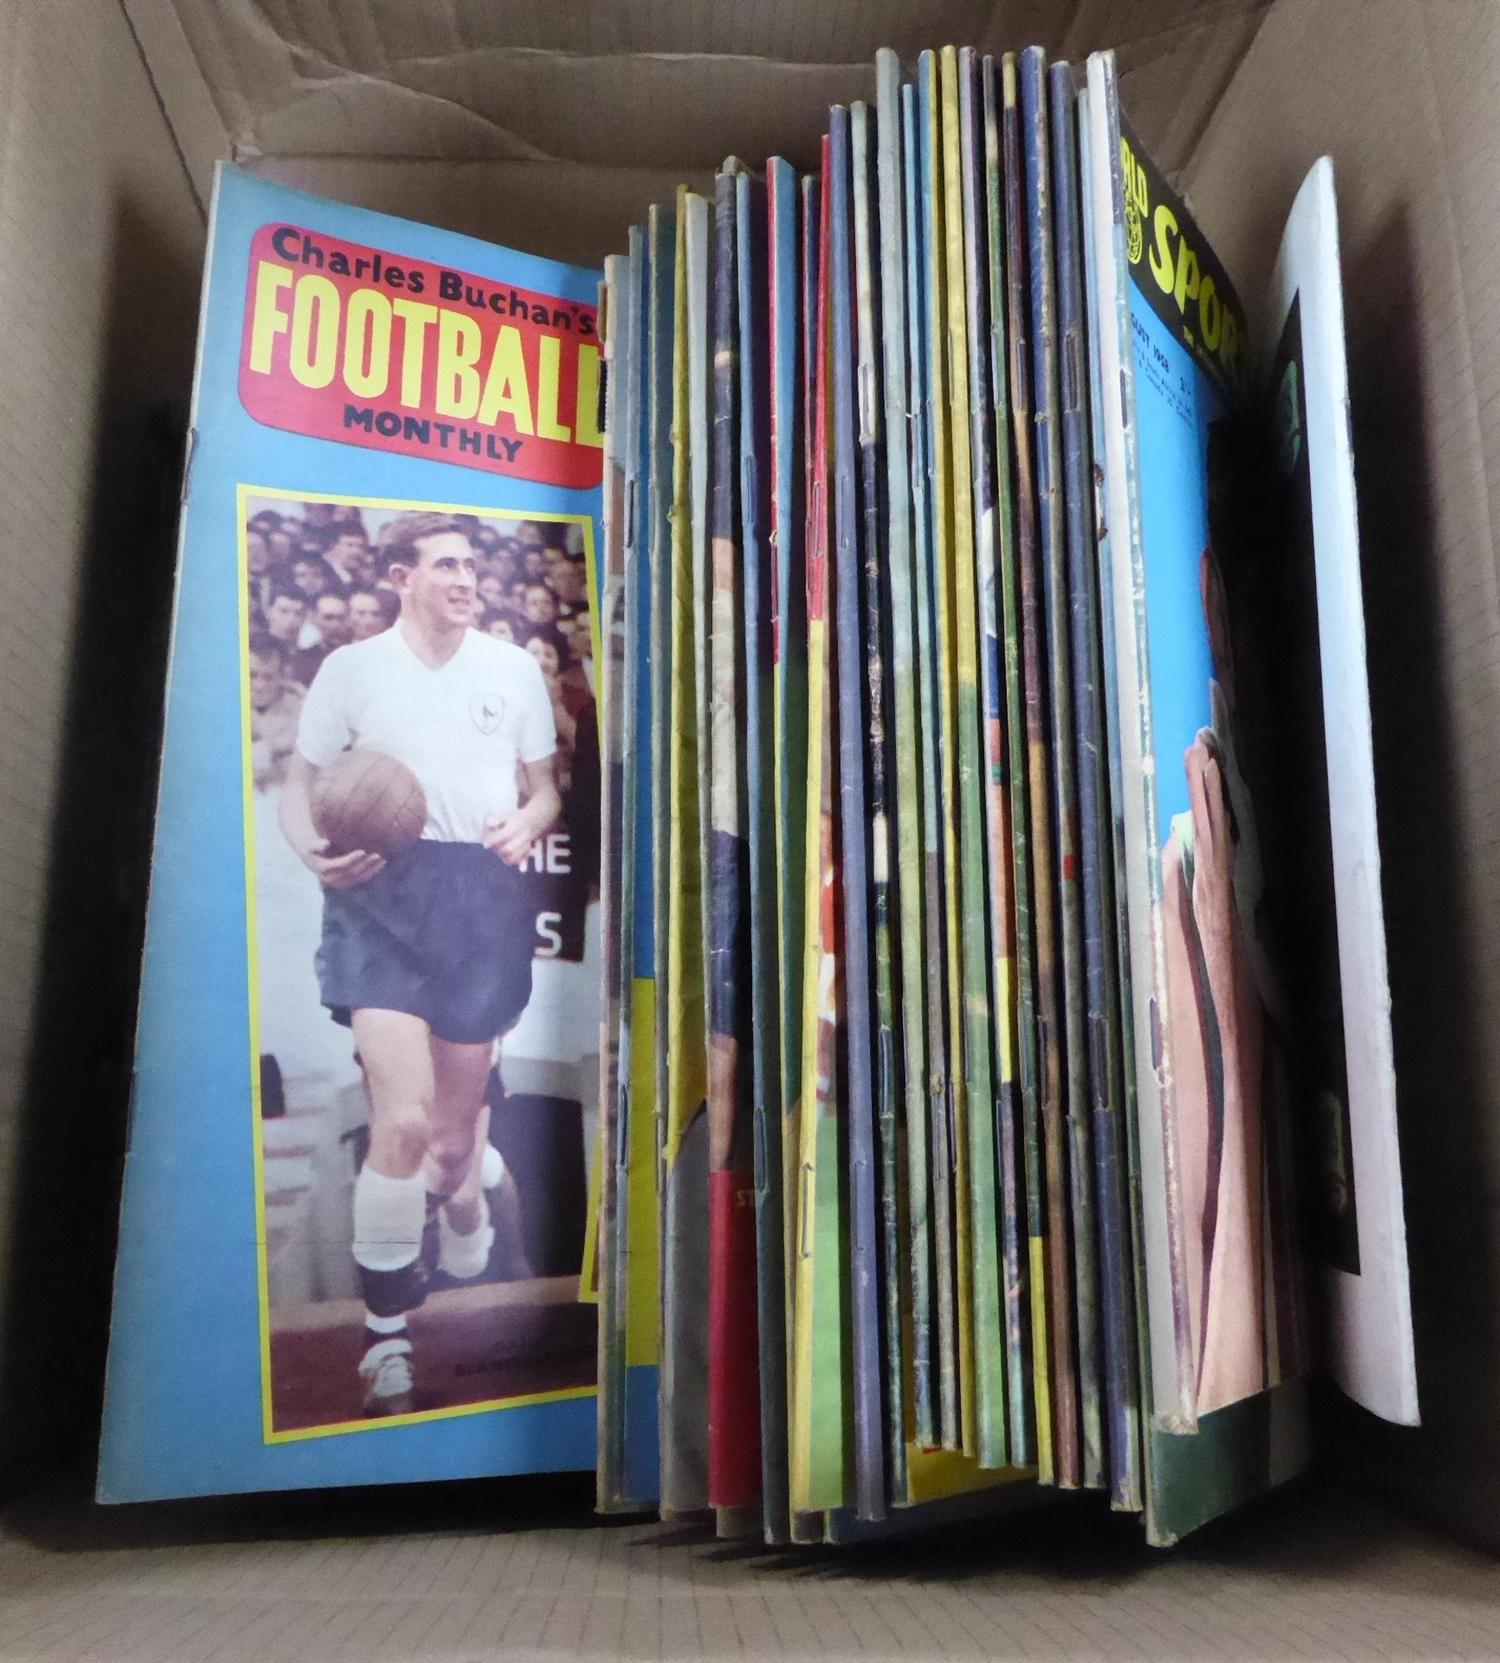 Lot 162 - FOOTBALL INTEREST, A SELECTION OF CHARLES BUCHAN FOOTBALL MONTHLY MAGAZINES, approximately 60